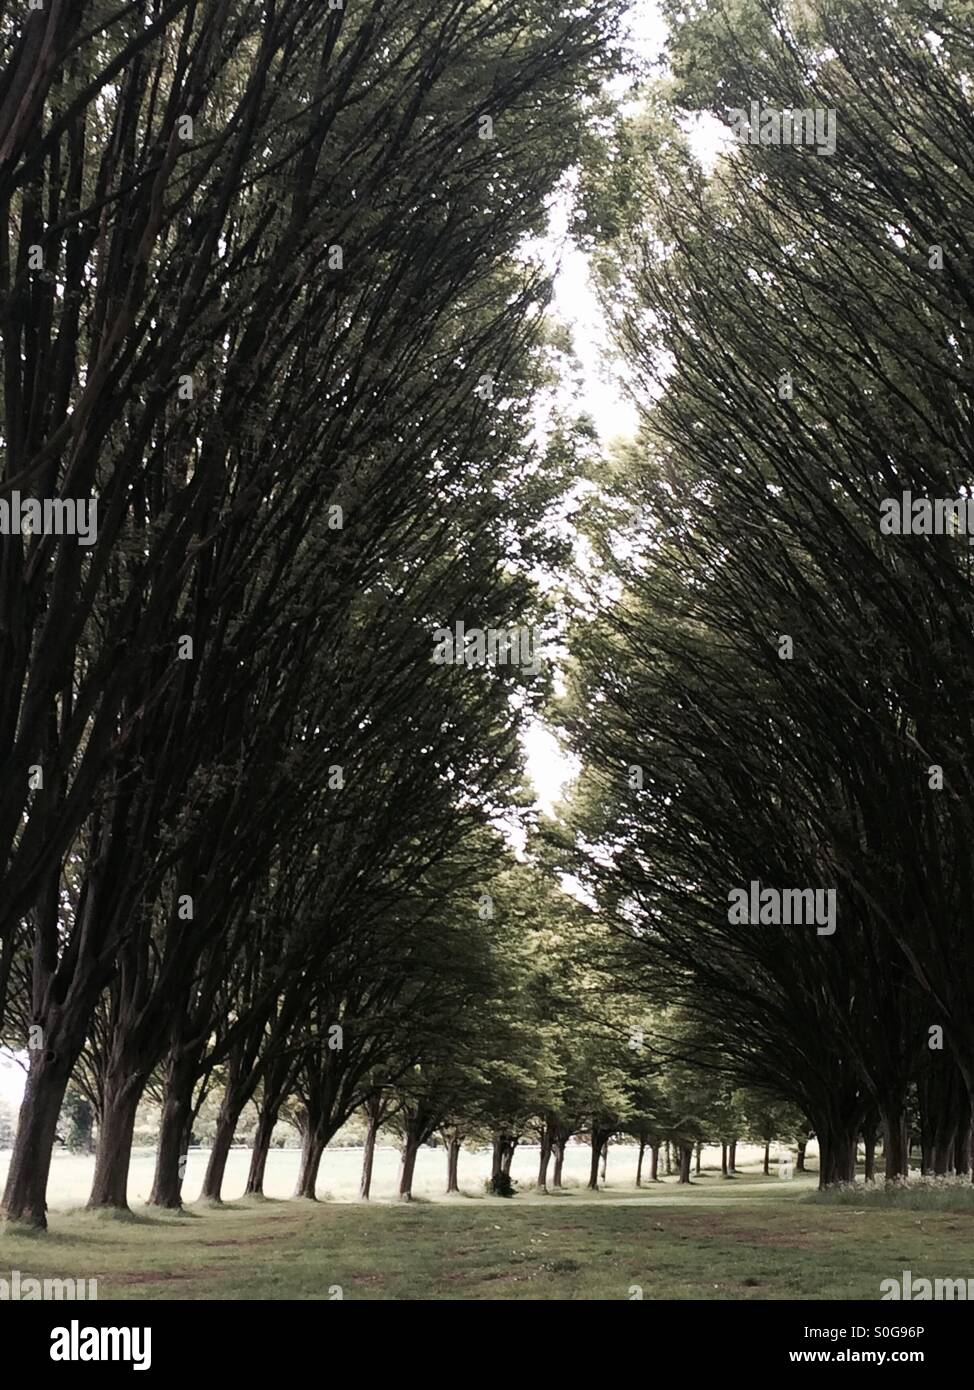 Firs at Radley College in Oxfordshire - Stock Image